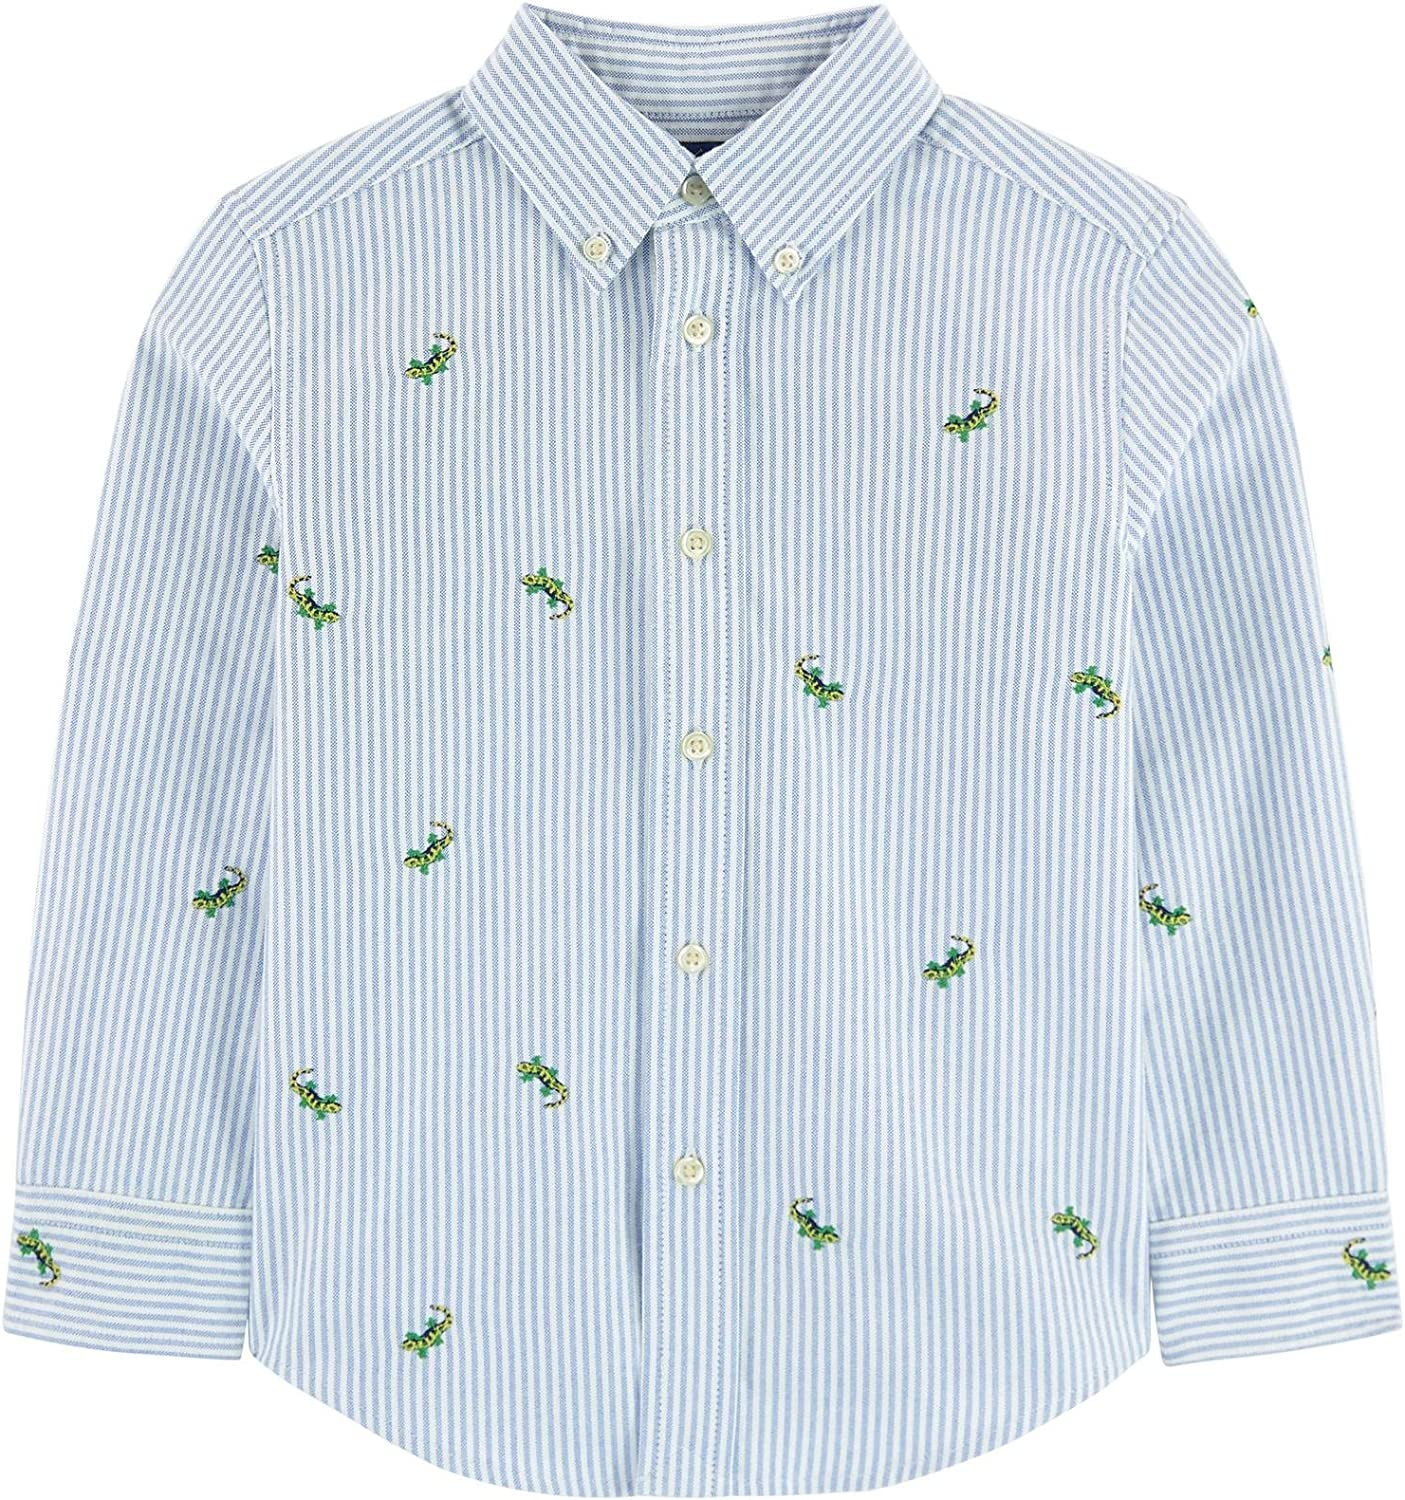 Ralph Lauren Polo Boys Embroidered Striped Oxford Long Sleeve Shirt